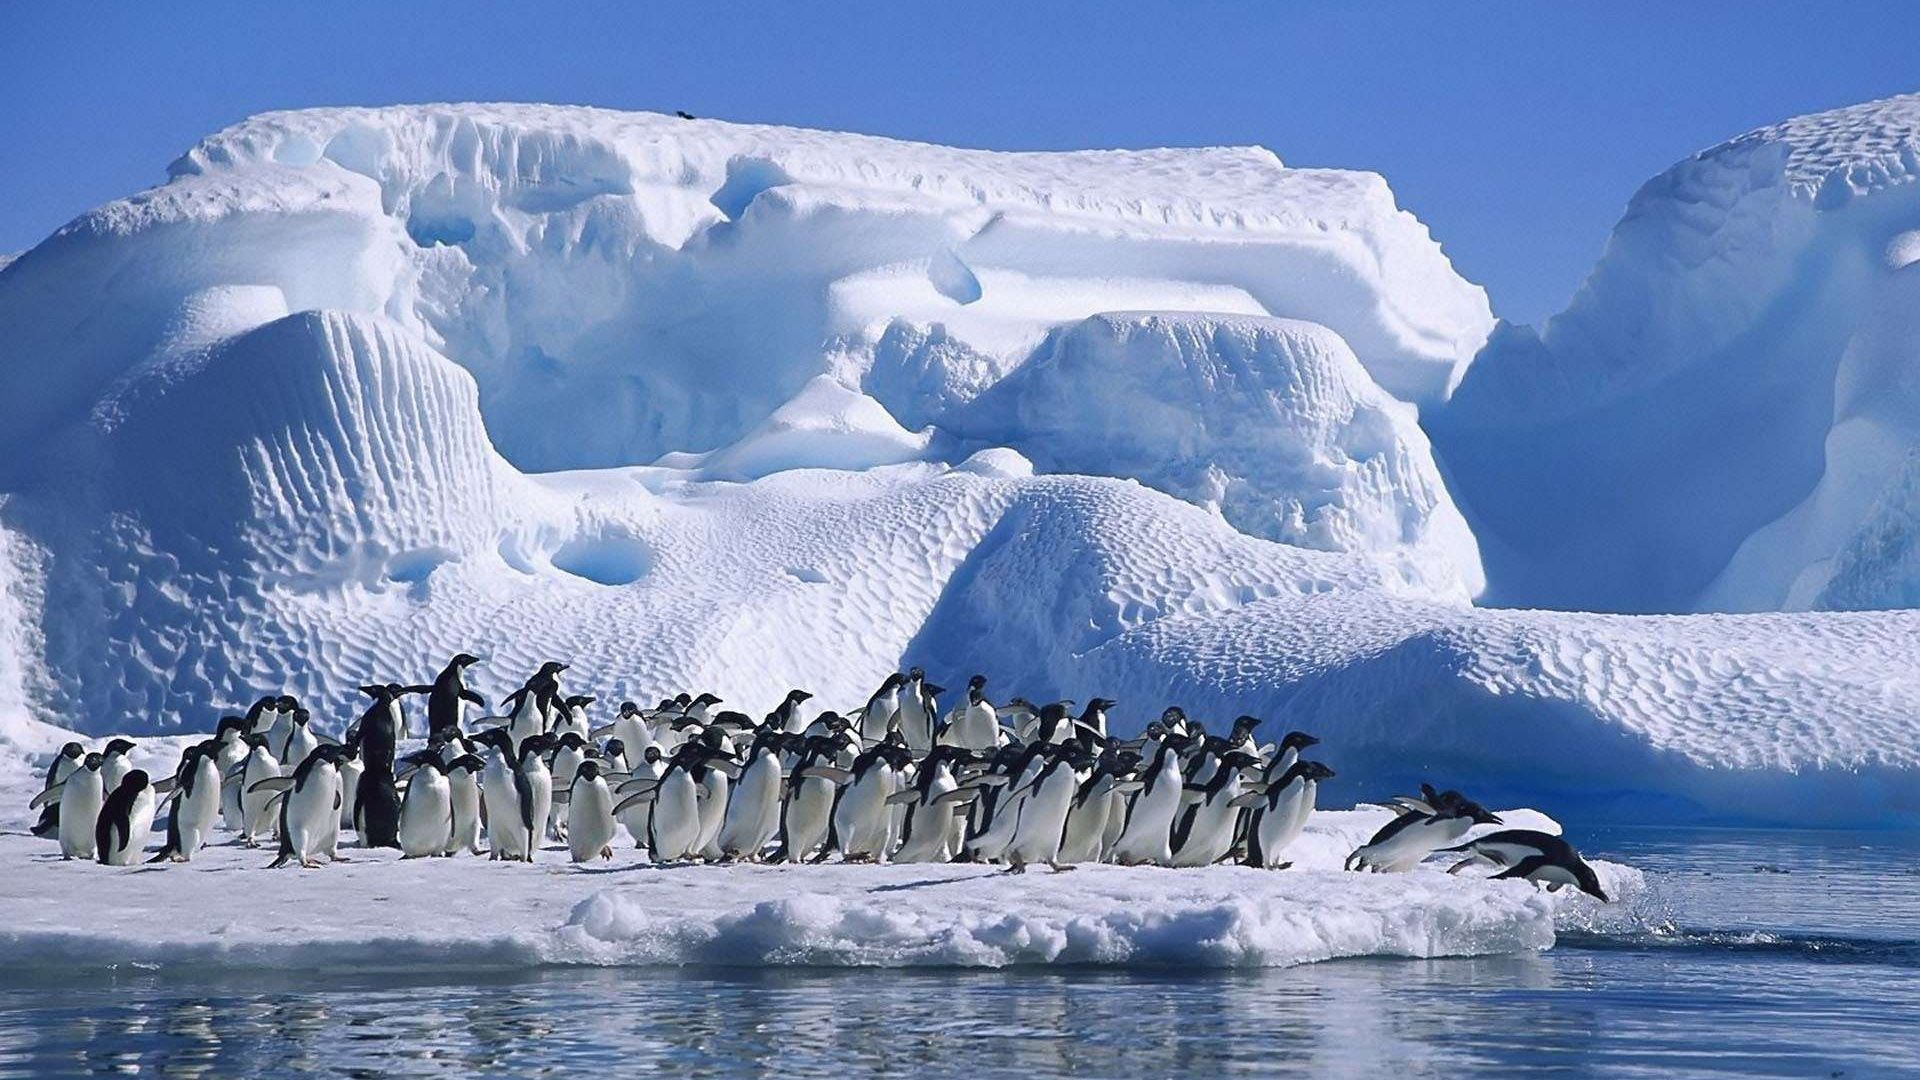 Adelie Penguins Antarctic Coast HD Wallpaper   Wallpaper Stream 1920x1080